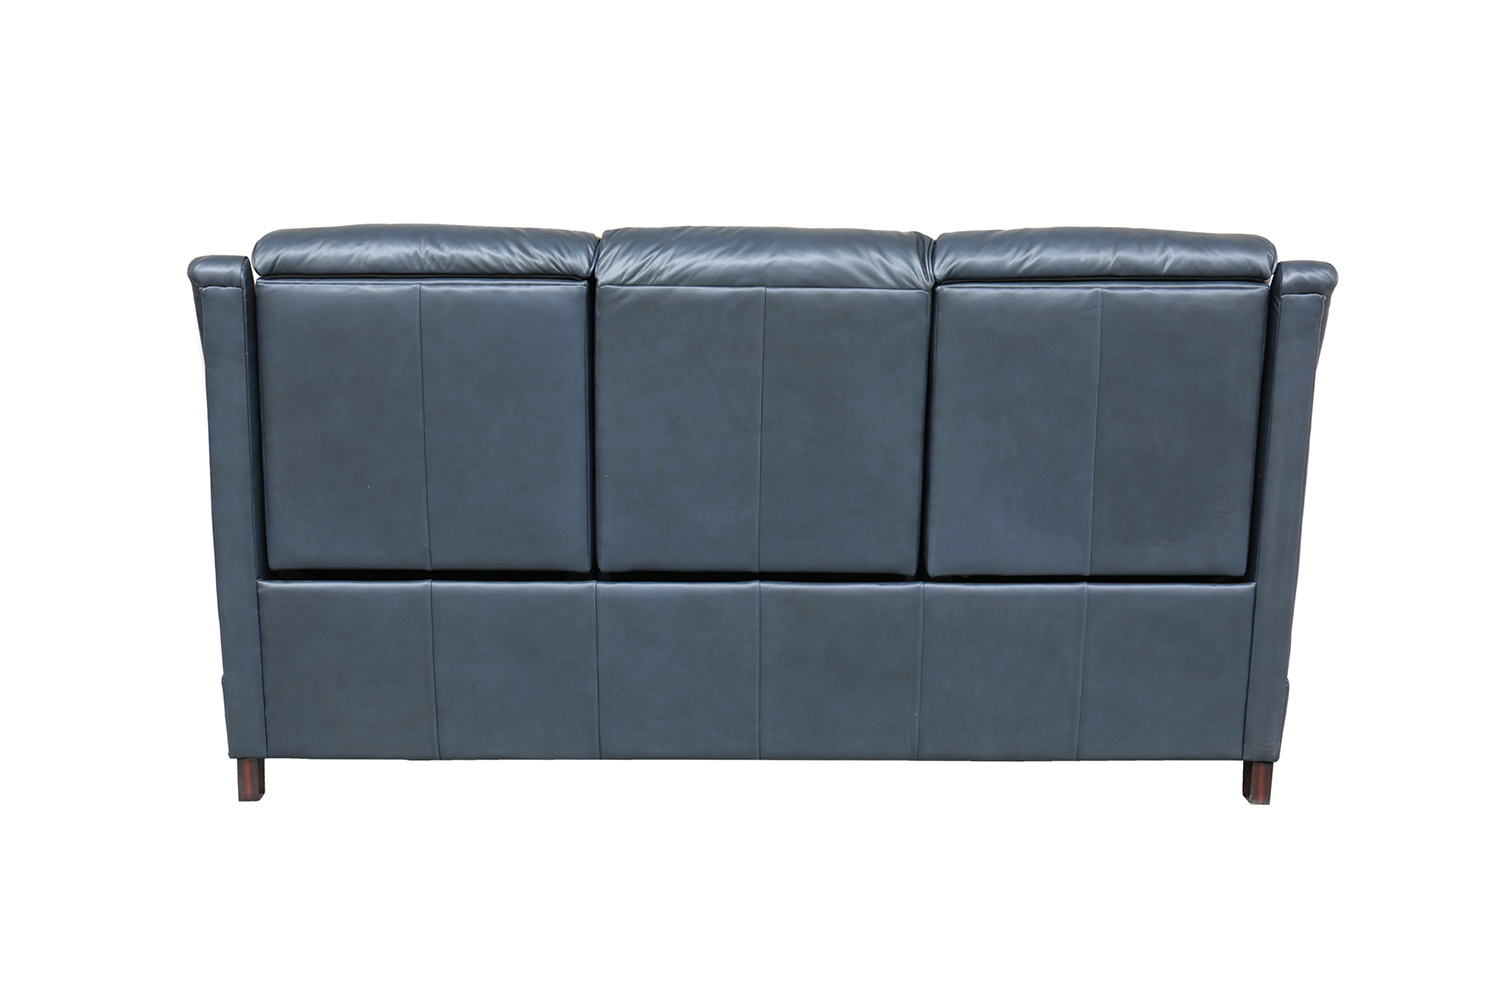 Barcalounger Warrendale Power Reclining Sofa with Power Head Rests - Shoreham Blue/All Leather